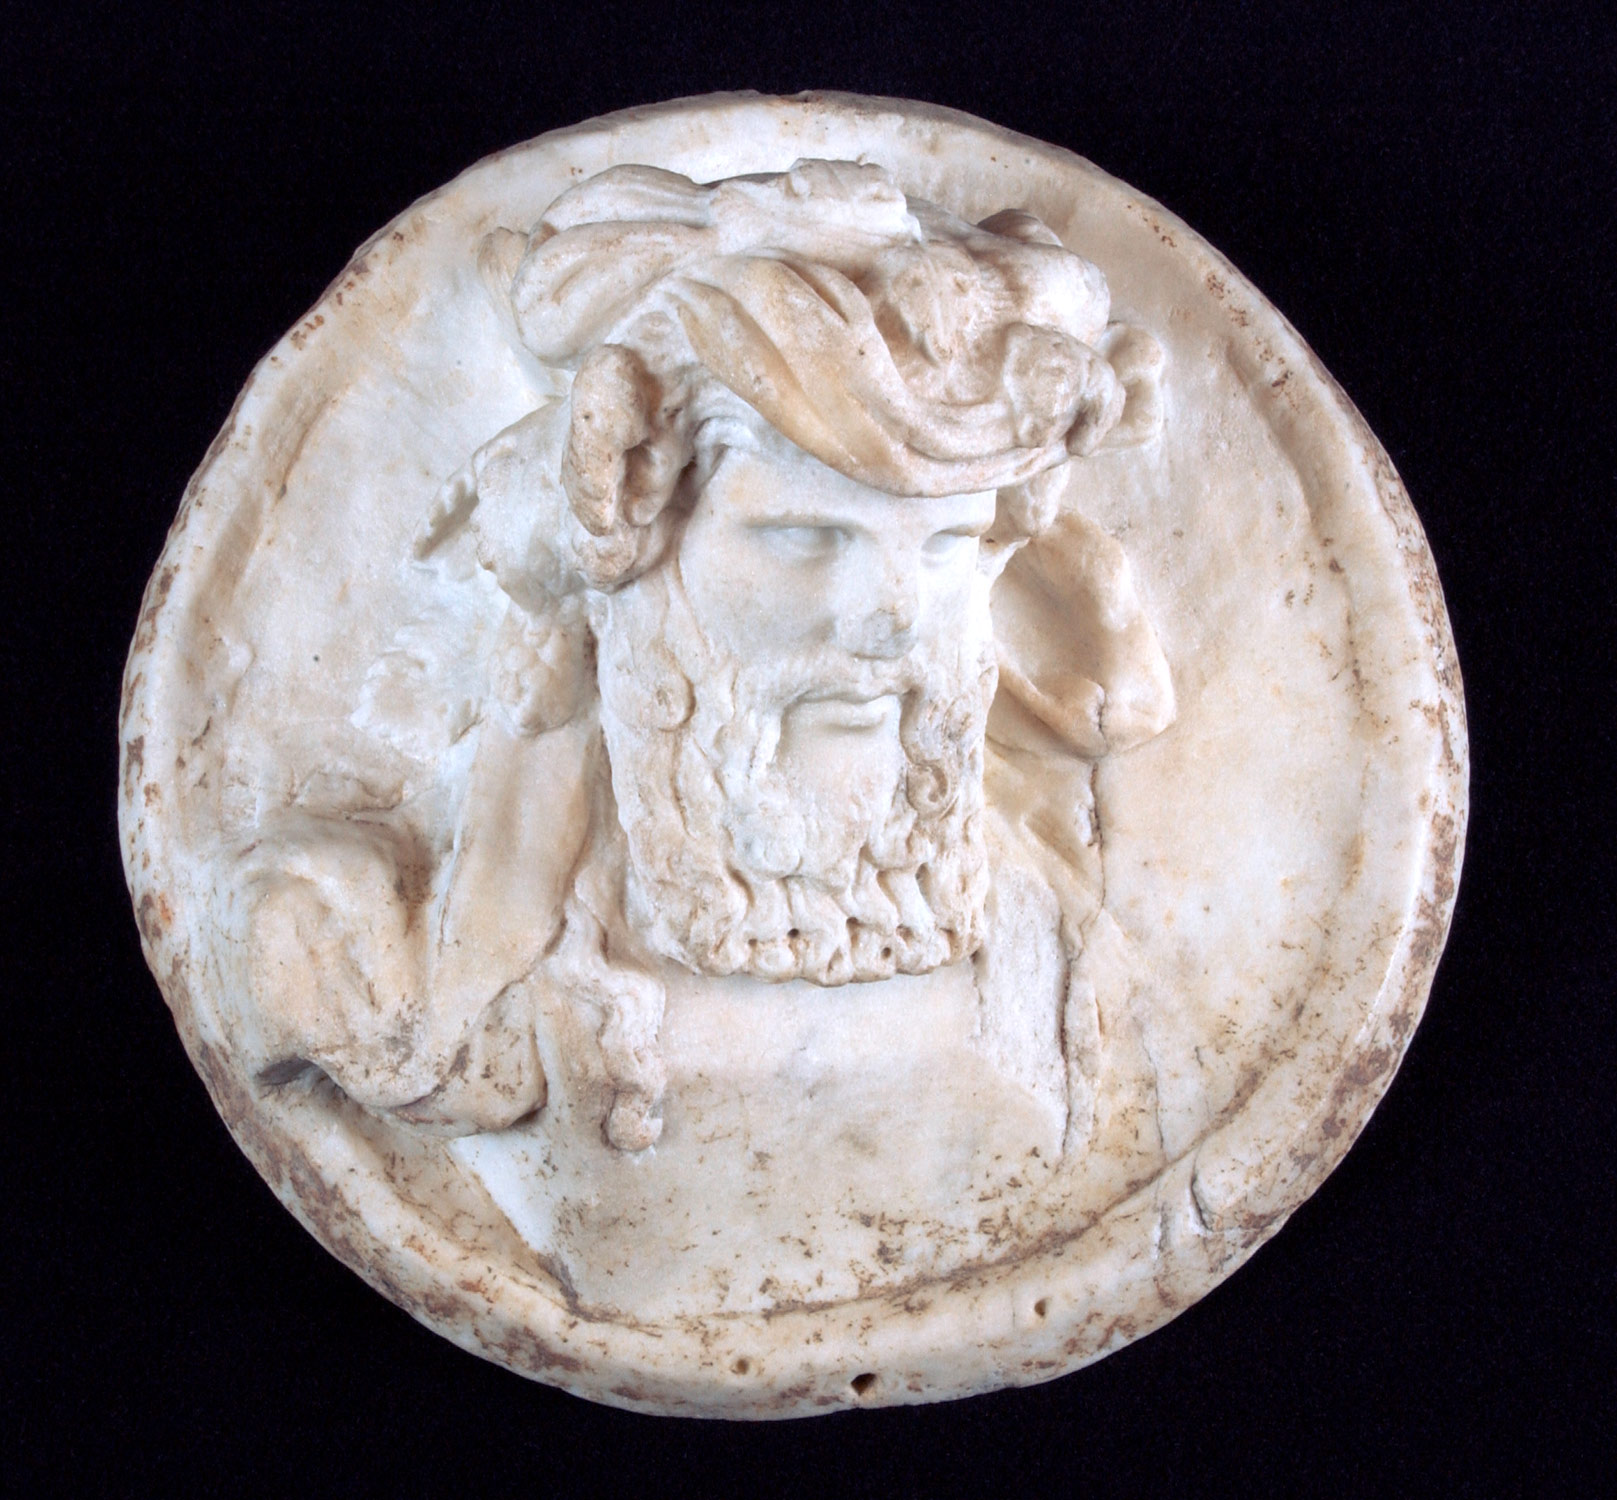 Marble disk with a herm of Dionysus in relief